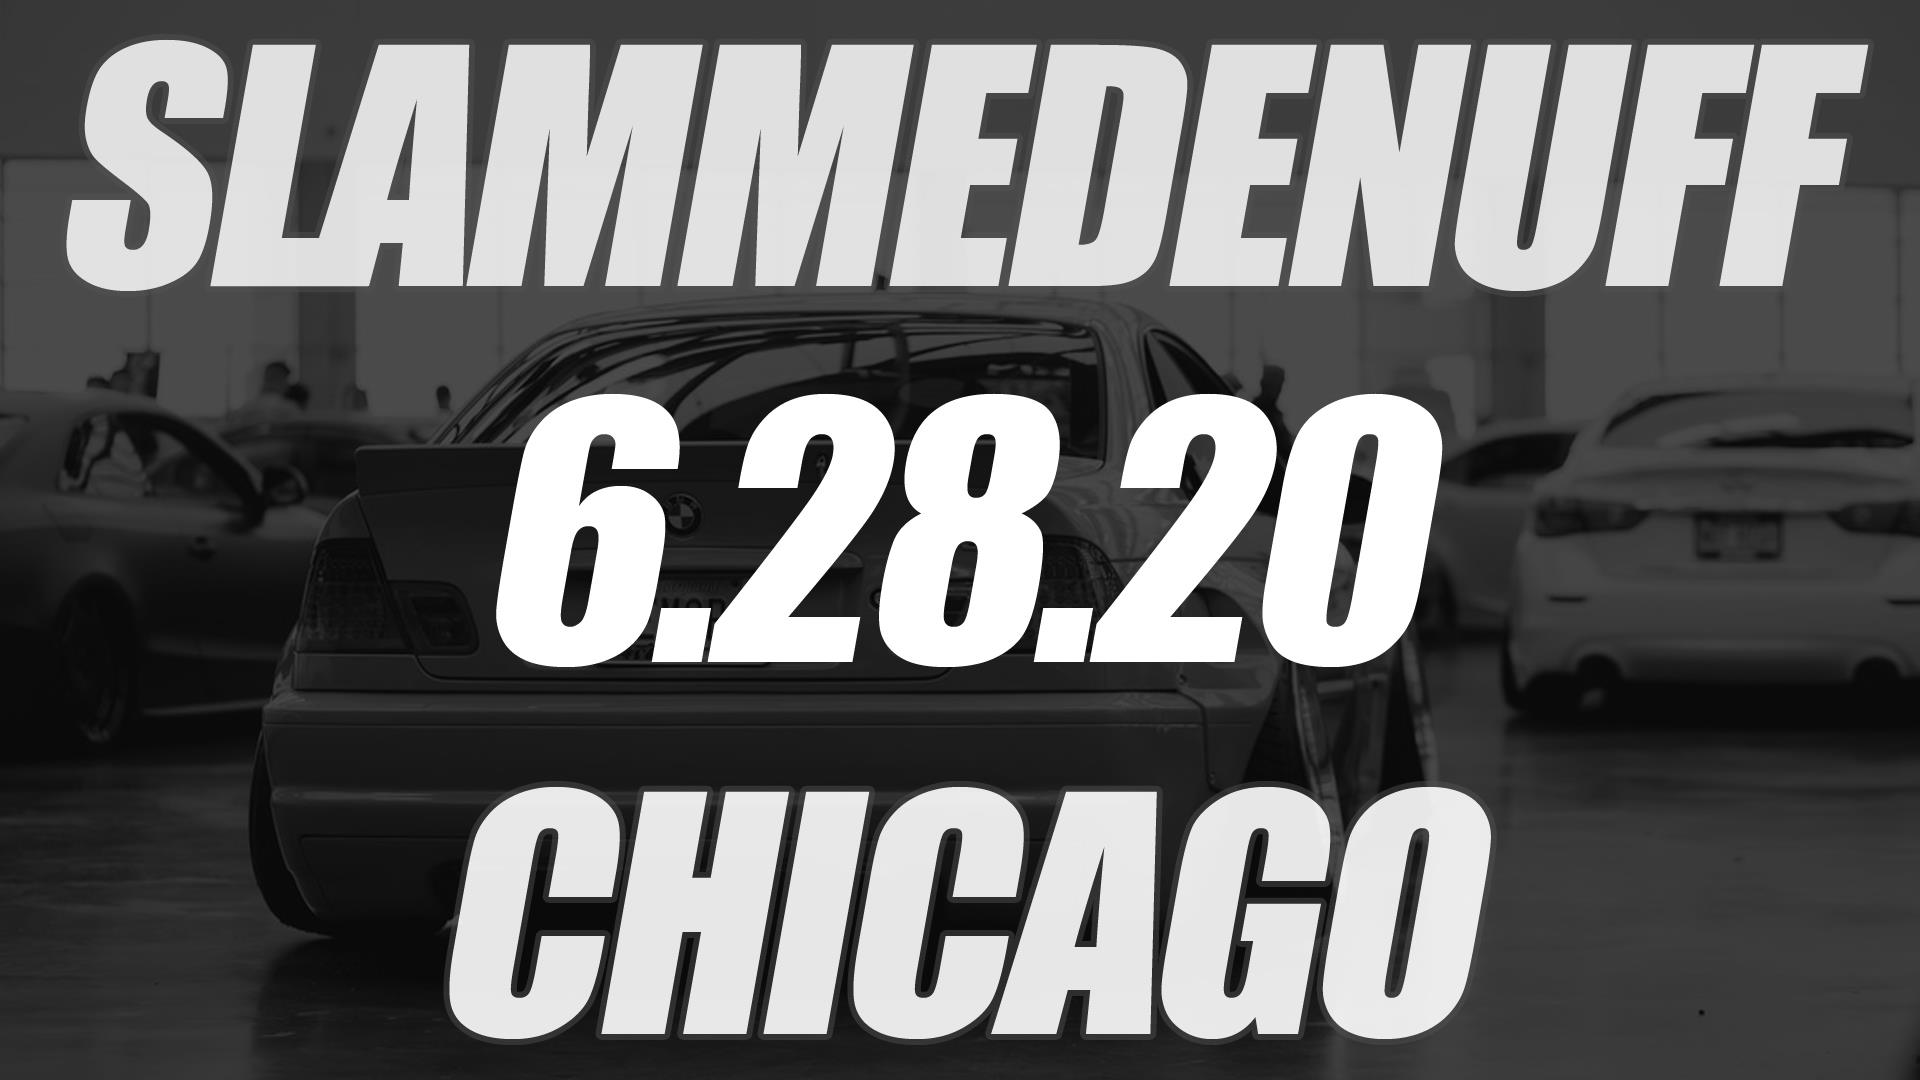 Slammedenuff Chicago Car Show at the Lake County Fairgrounds & Event Center